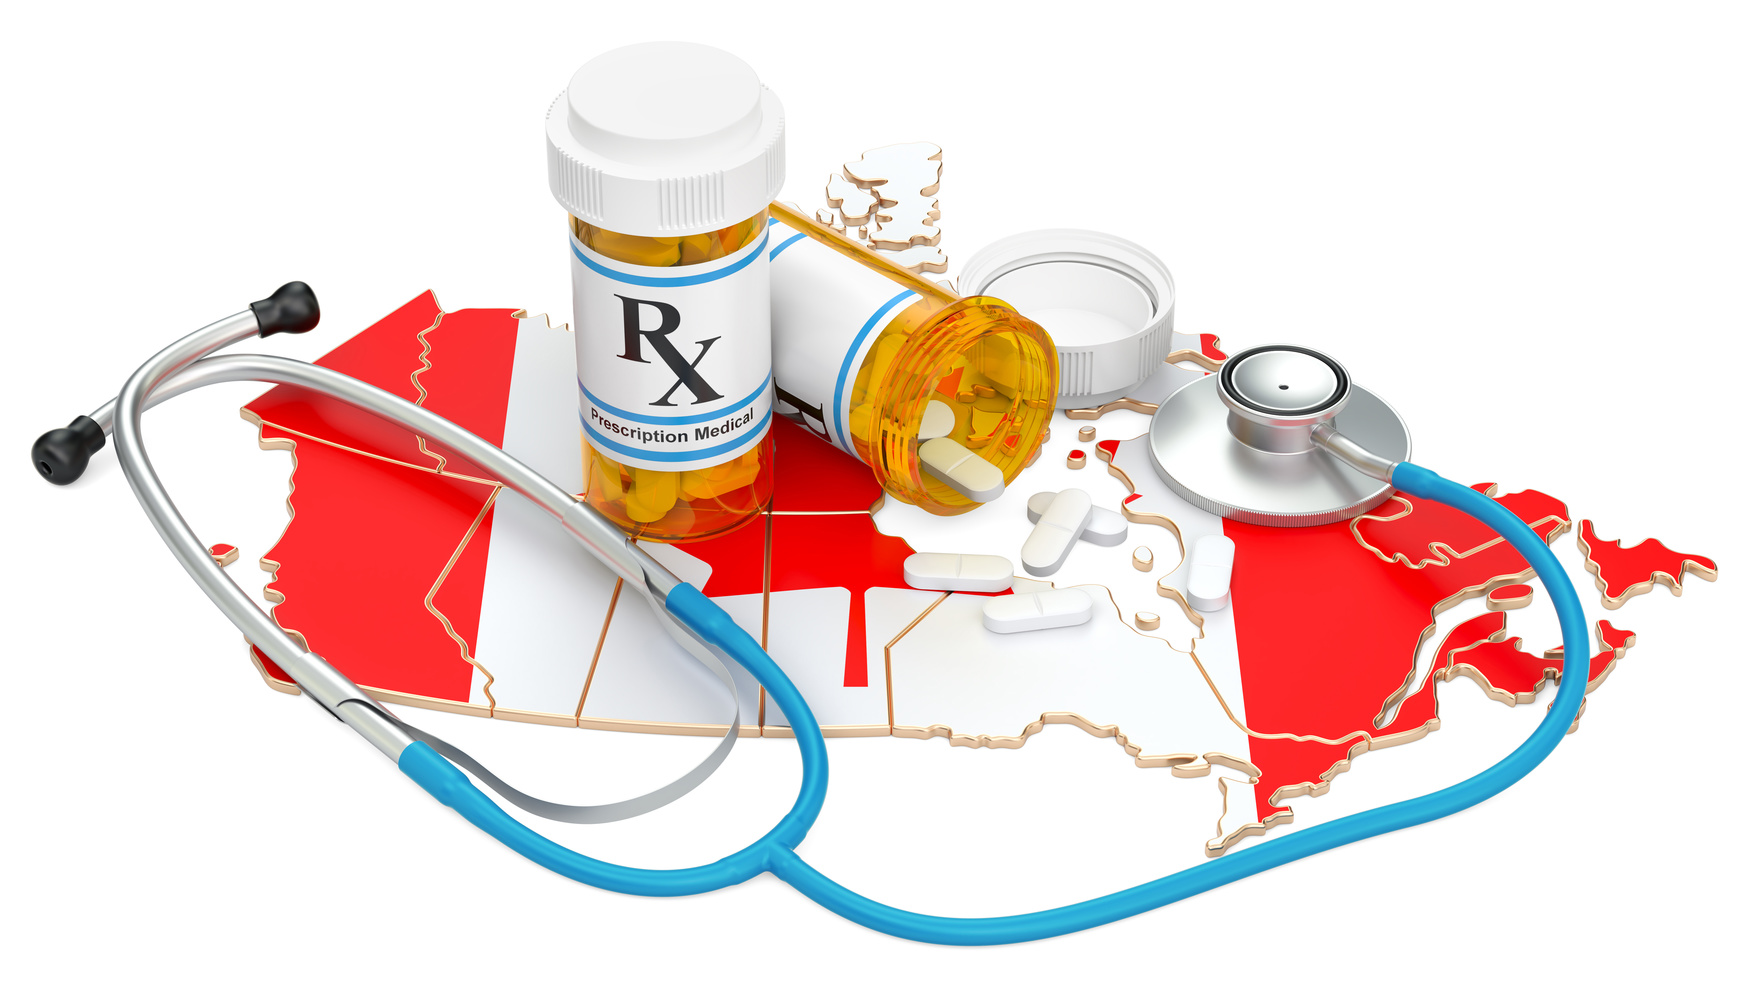 Unfinished business: Time for a national Pharmacare system